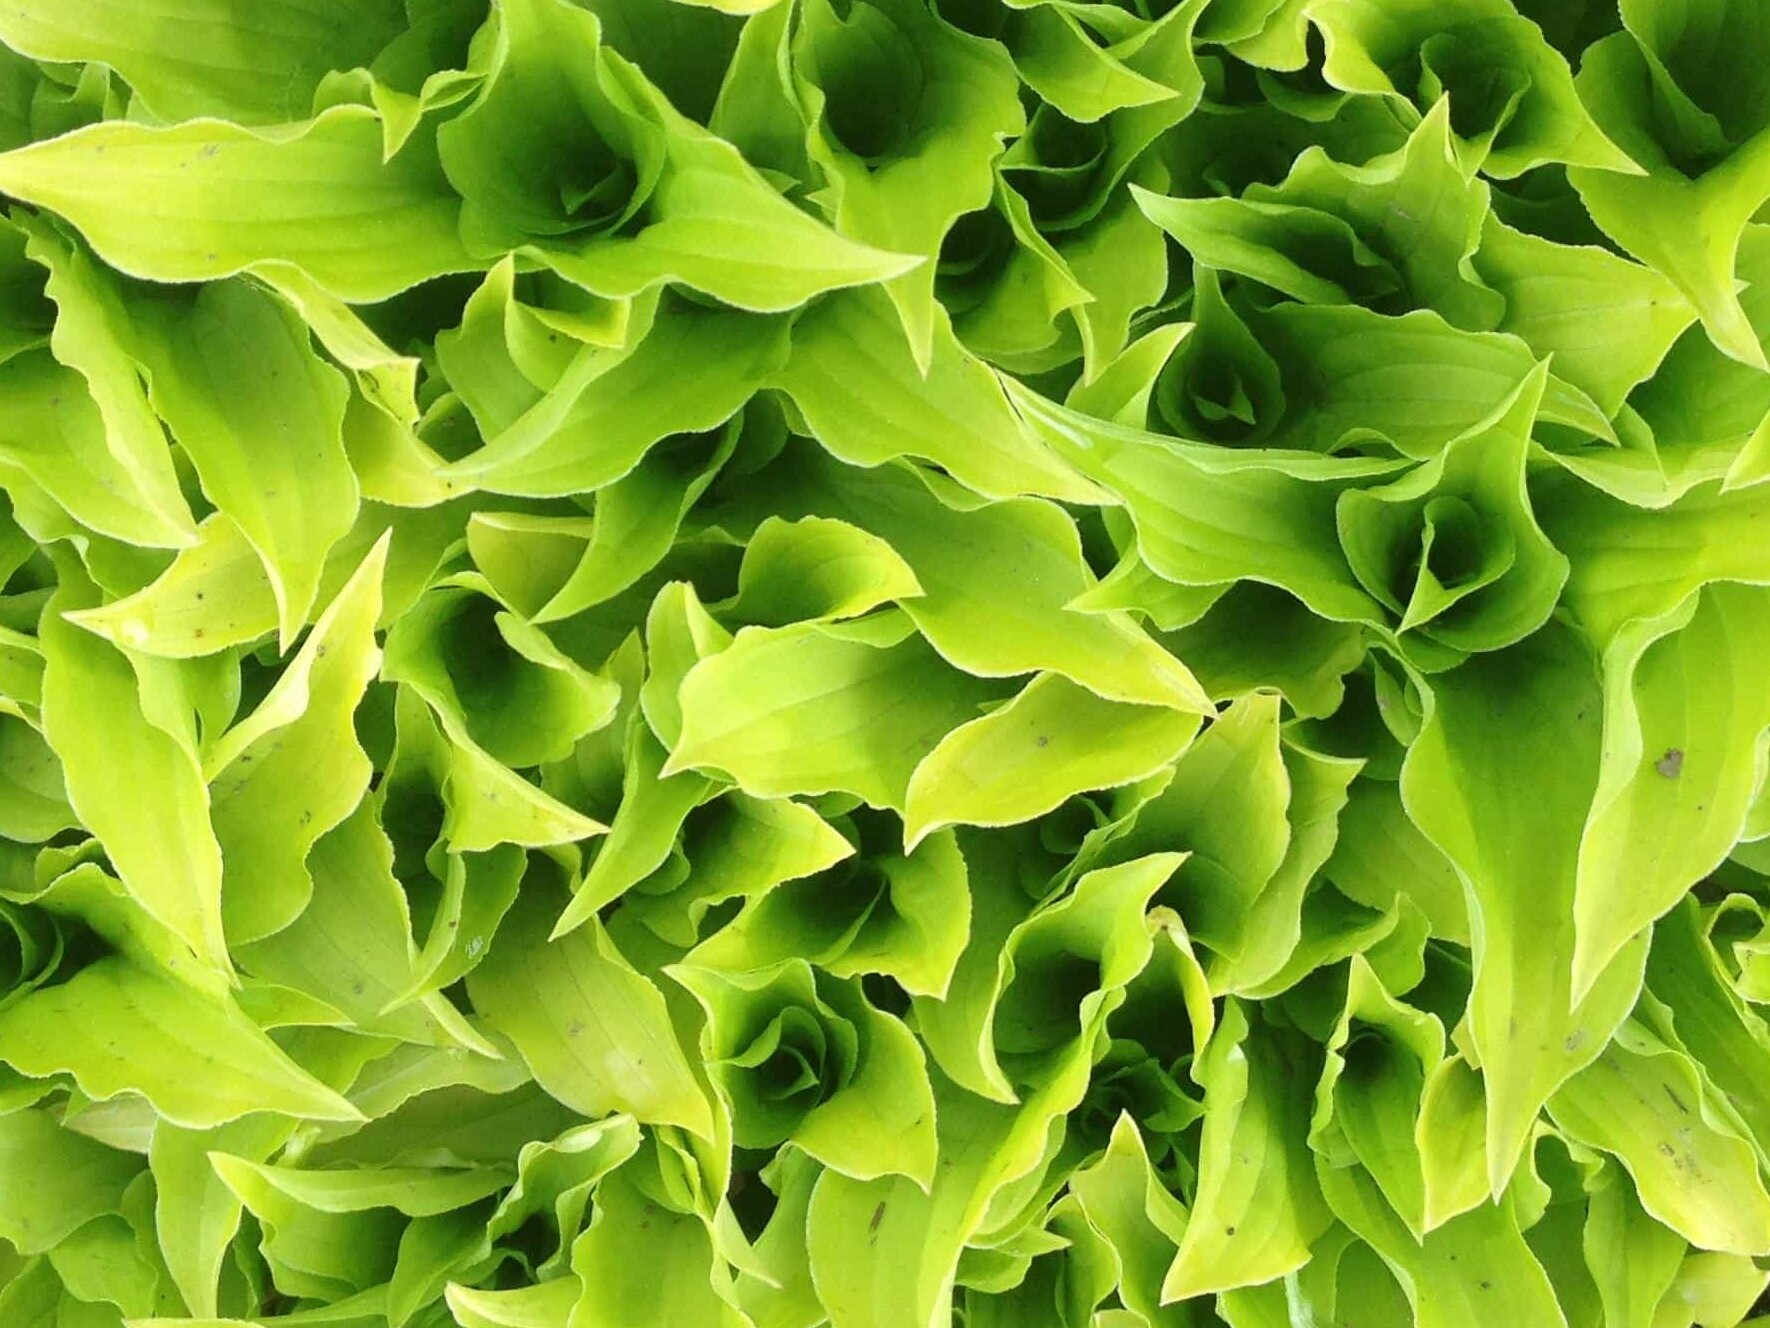 Crowded hosta leaves in a lime color